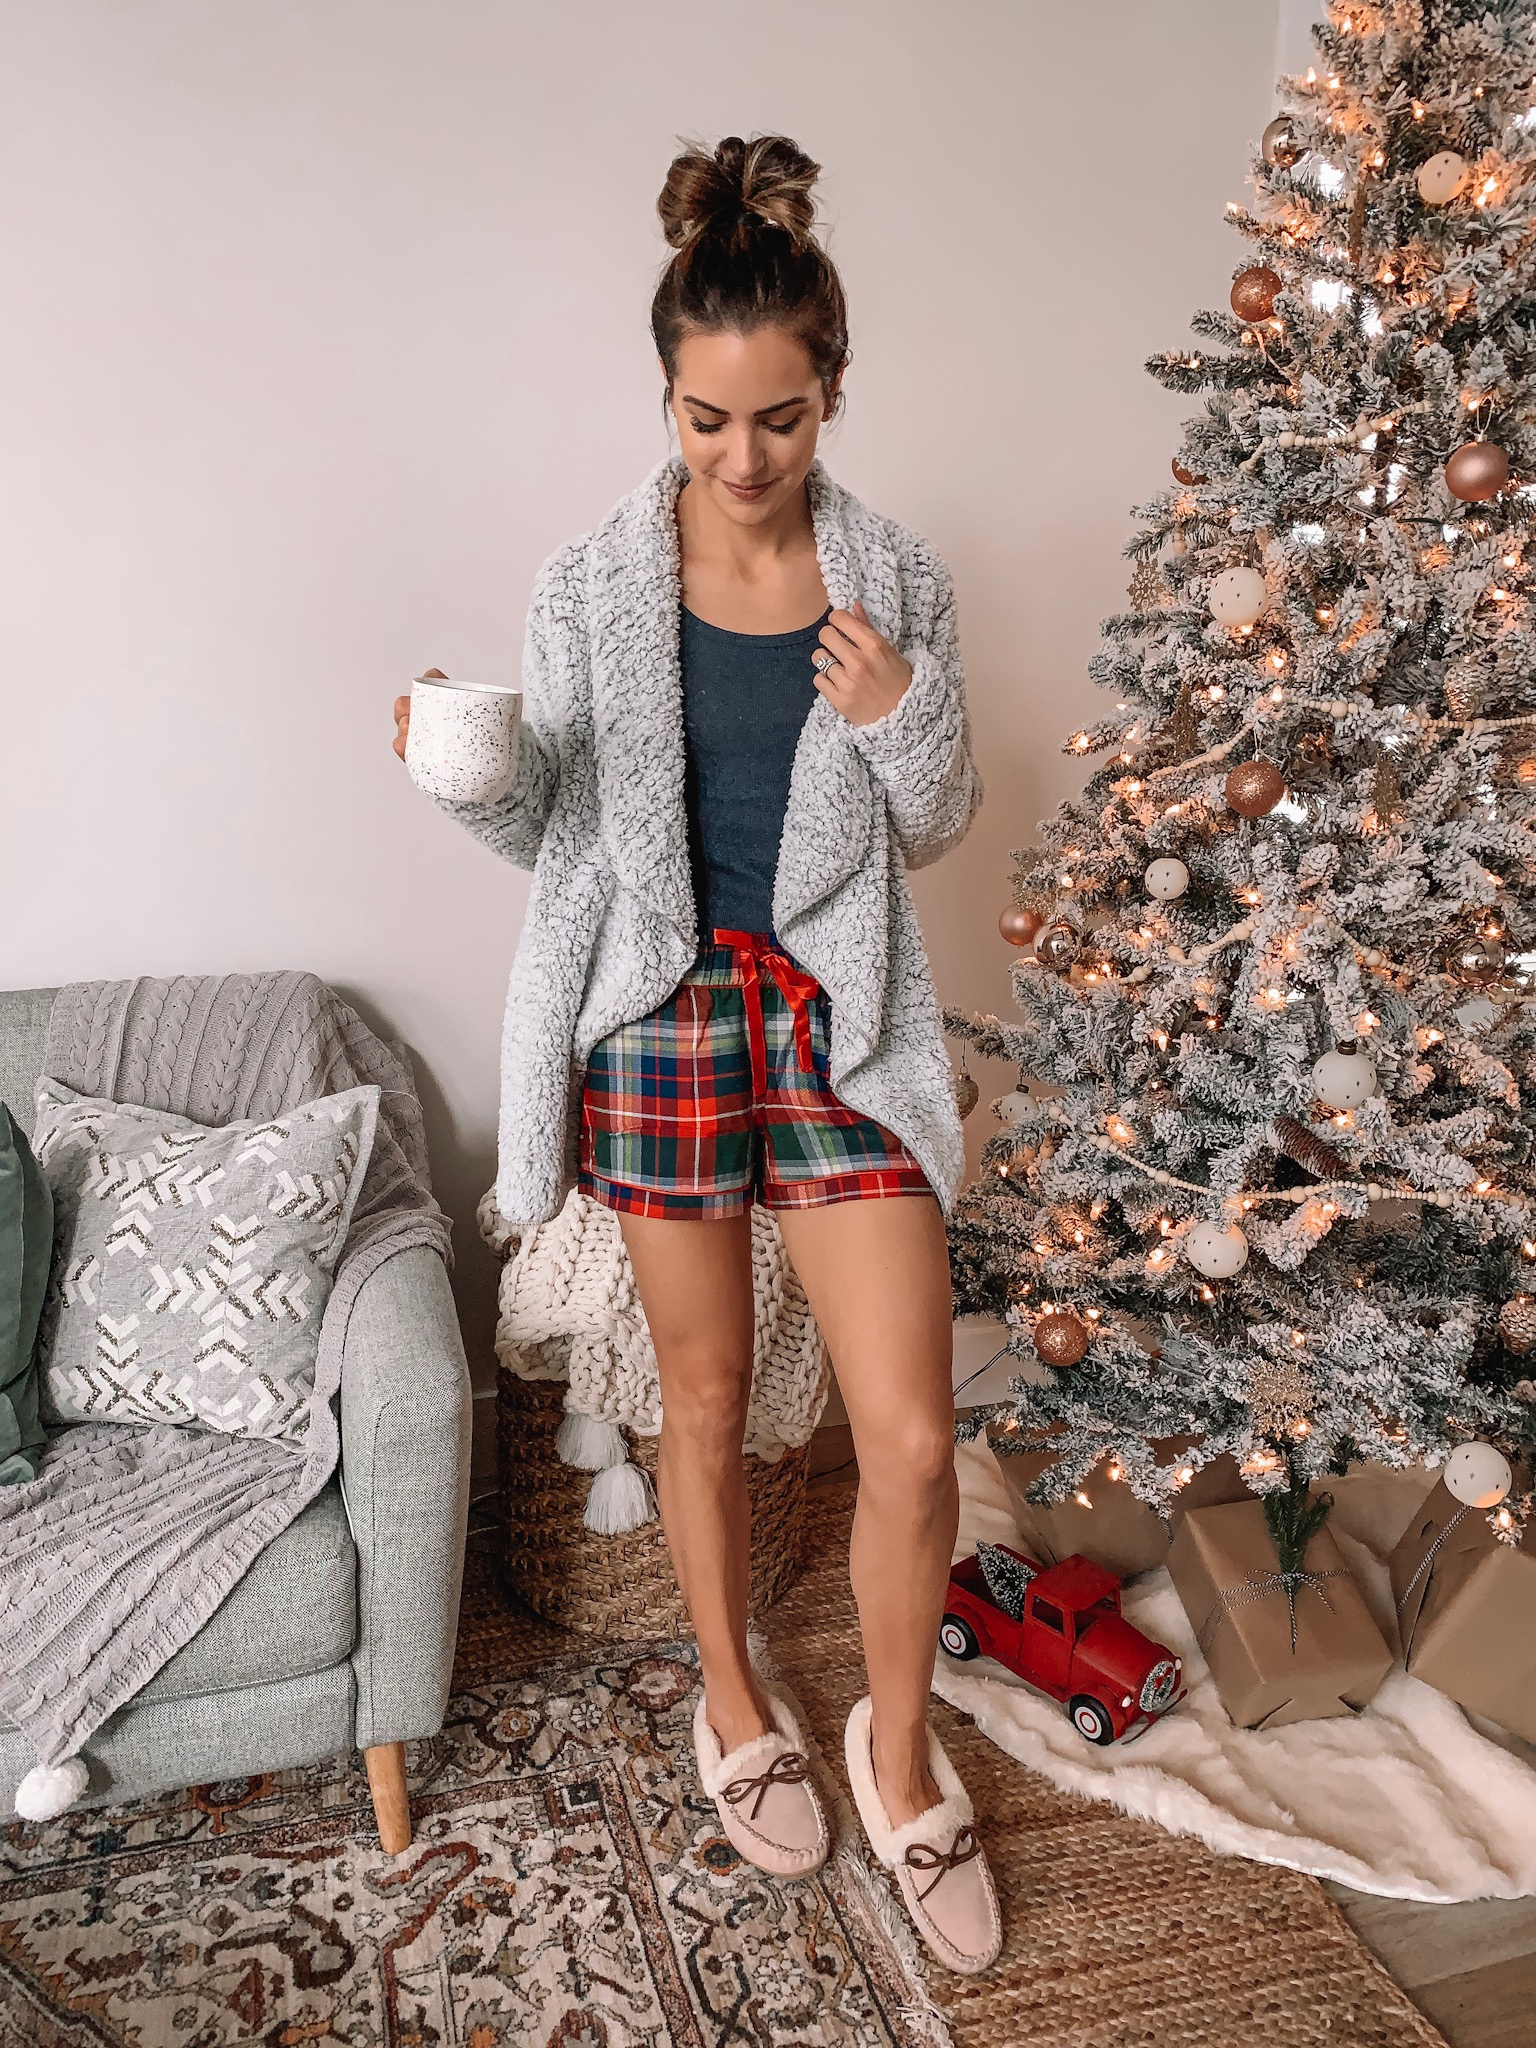 jockey holiday sleepwear, loungewear, Christmas pajamas, plaid flannel shorts, sherpa cardigan